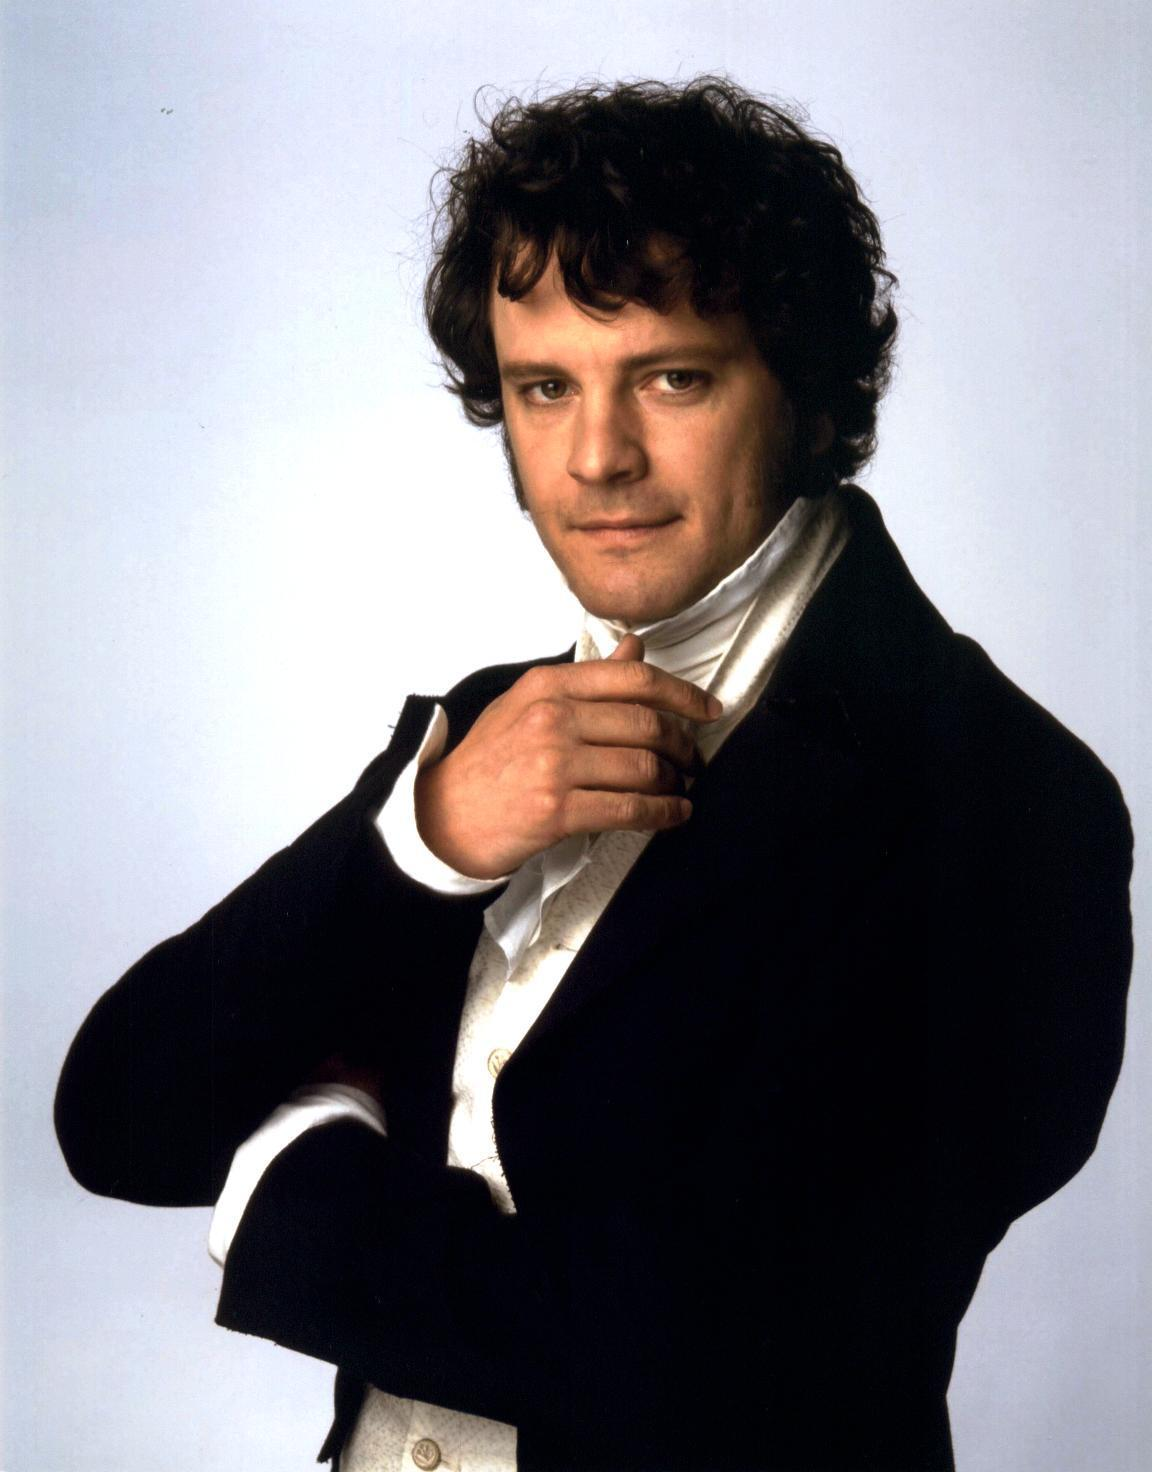 Colin Firth - THE Mr Darcy